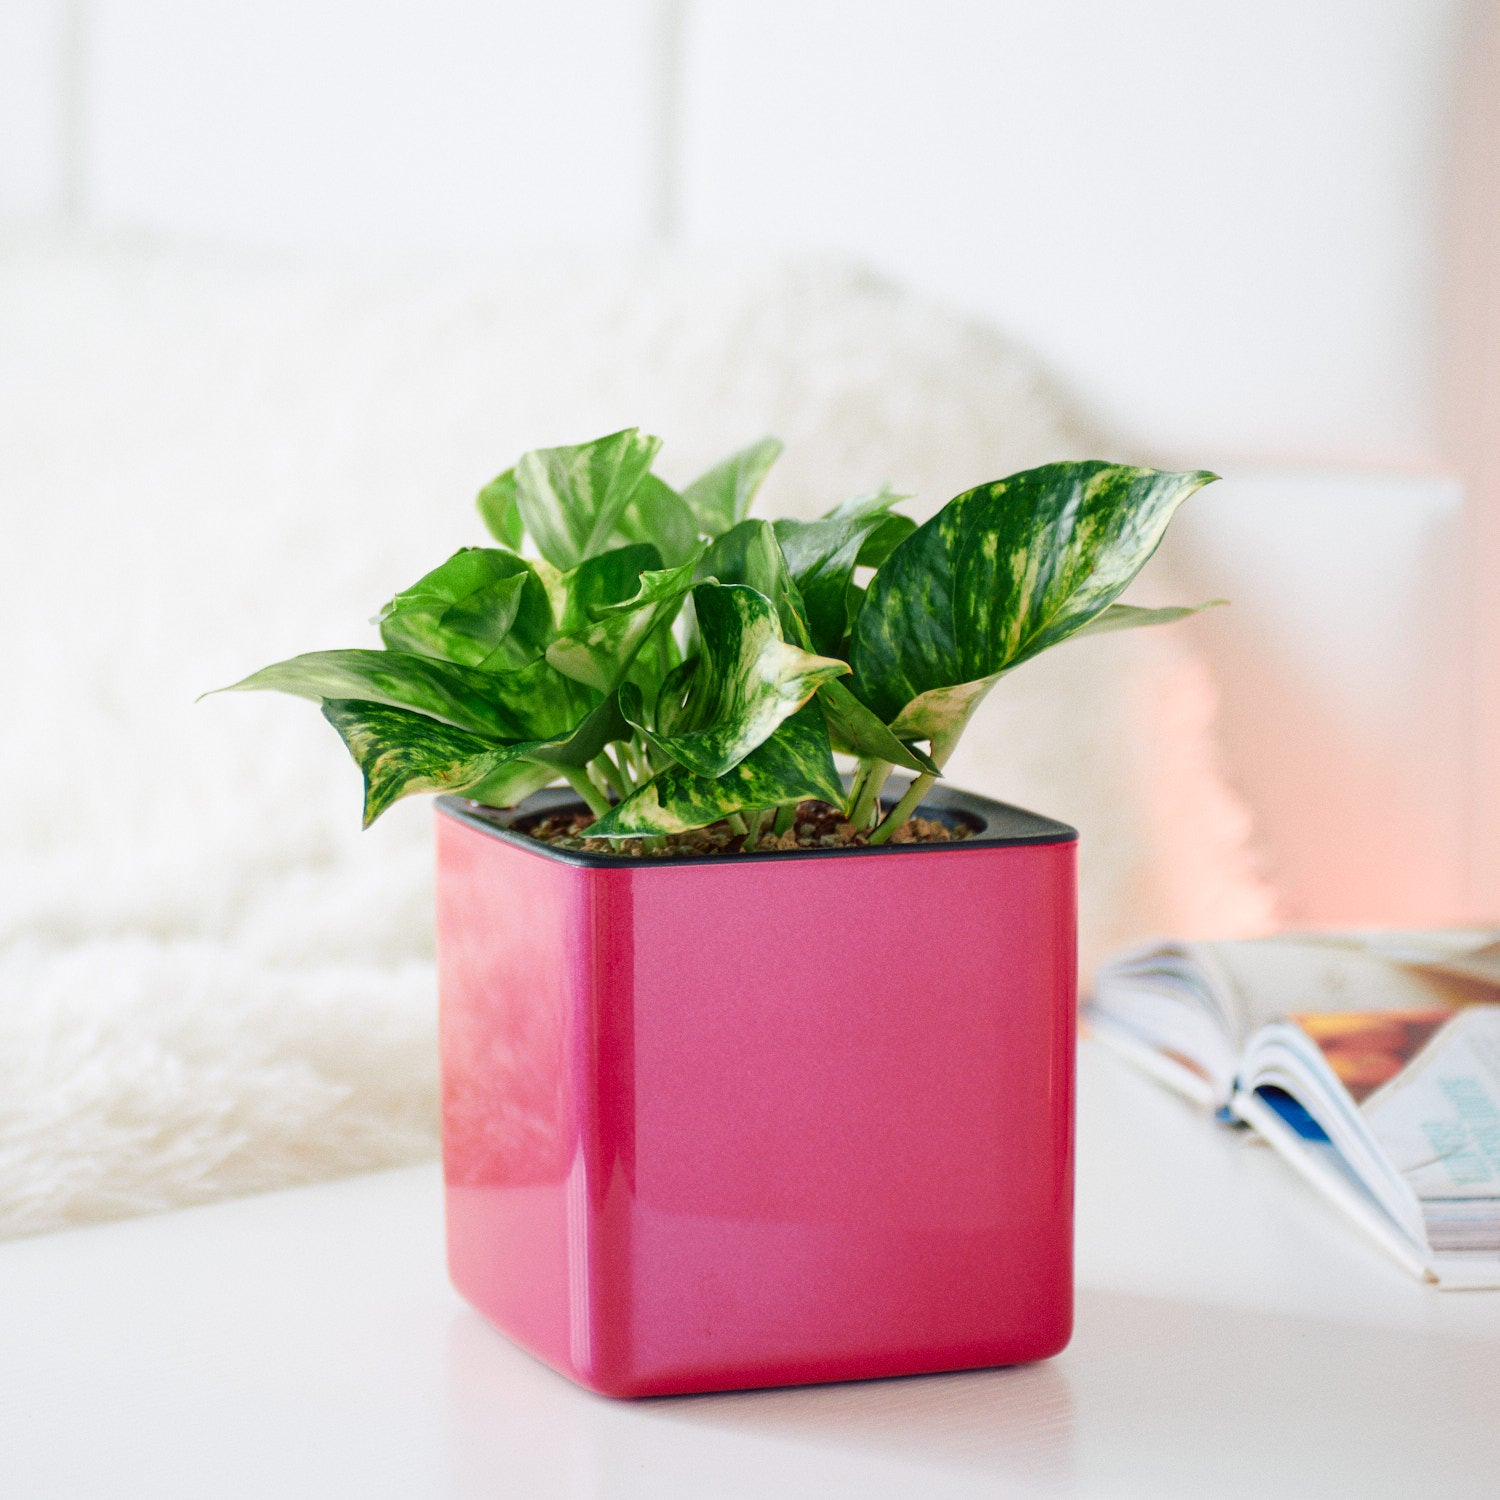 Pothos Variegated  In Lechuza Cube Cherry Pie Planter | My City Plants